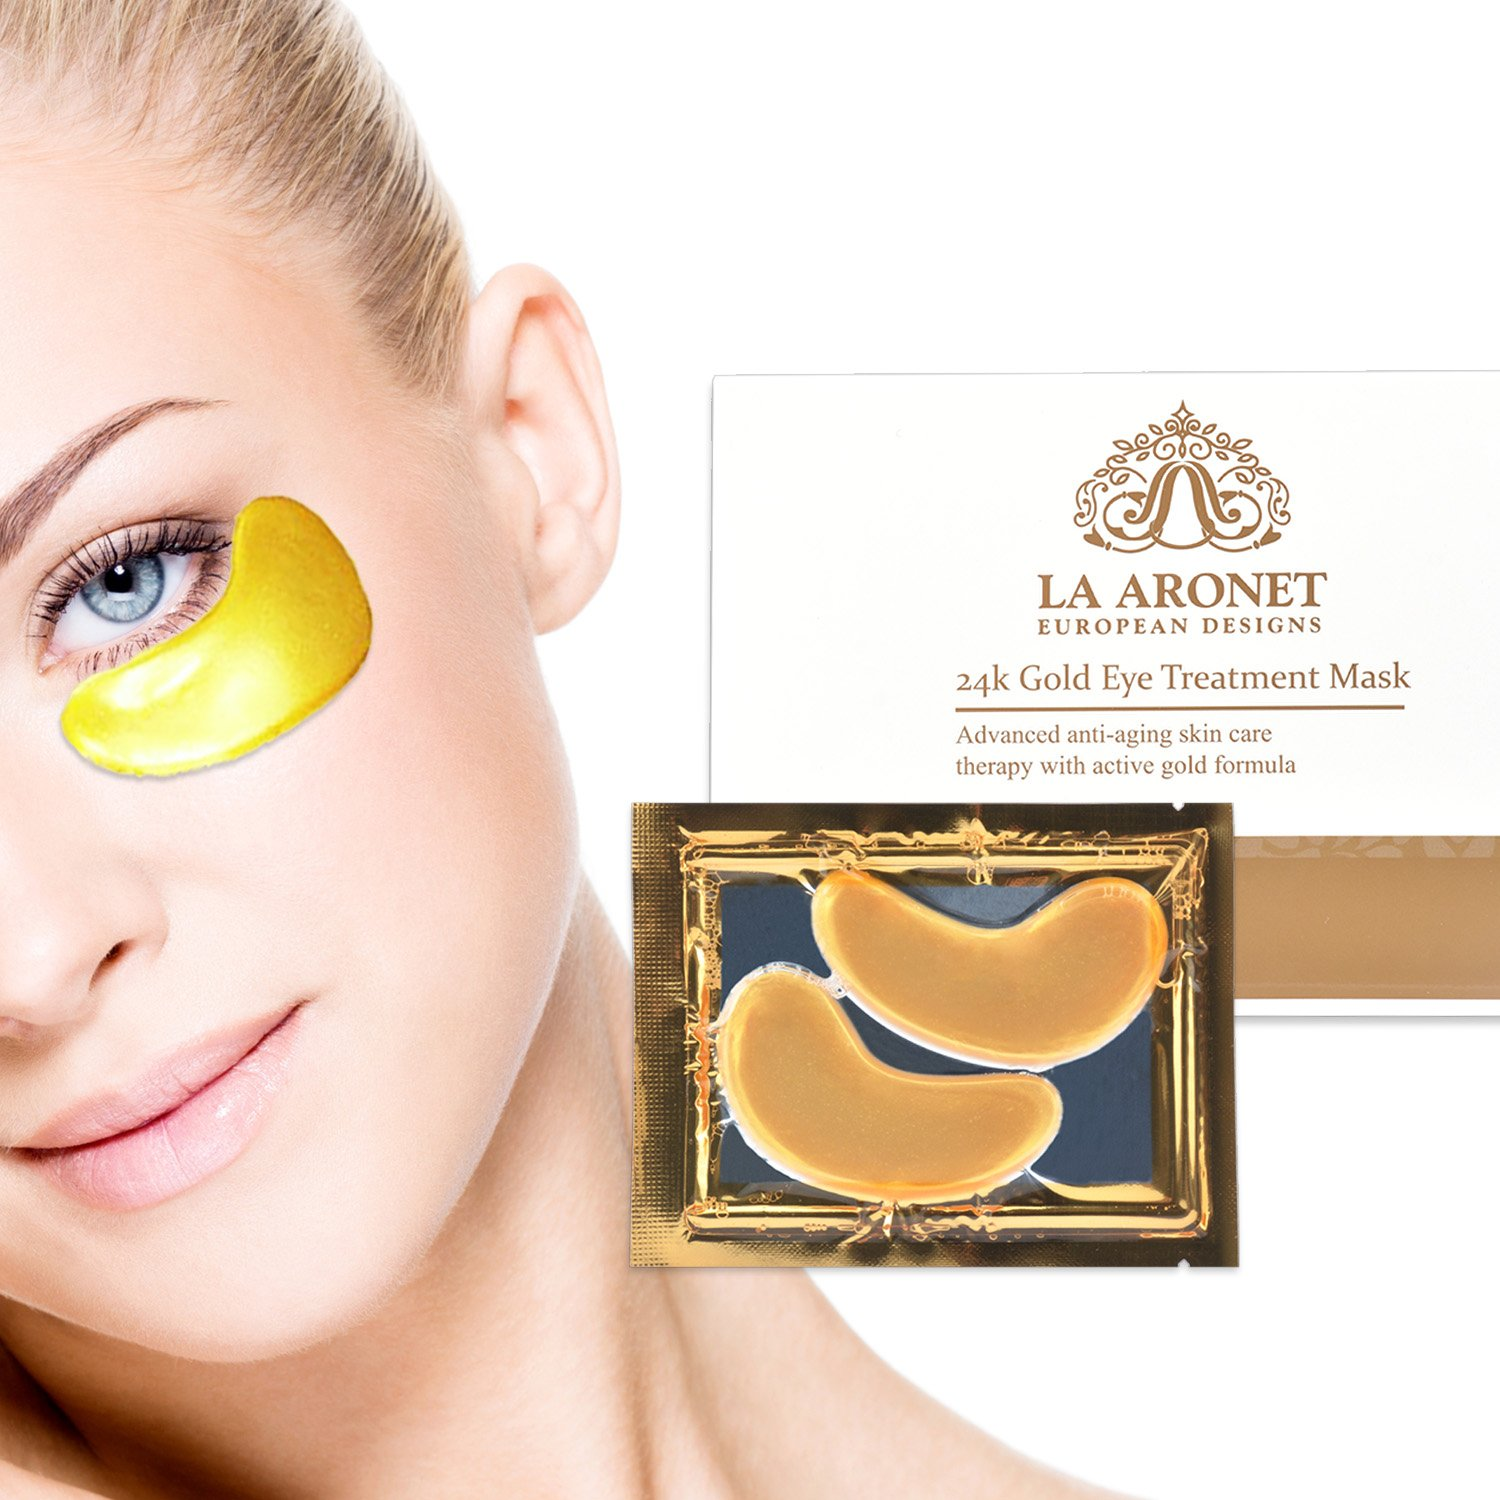 LA ARONET 24K Gold Eye Treatment Masks - (Pack of 20 Pairs) with Anti-Aging Wrinkle Reduction Collagen and Nutrients to Reduce Dark Circles, Bags, and Eye Puffiness, 5 EXTRA BONUS PAIRS included by LA ARONET (Image #7)